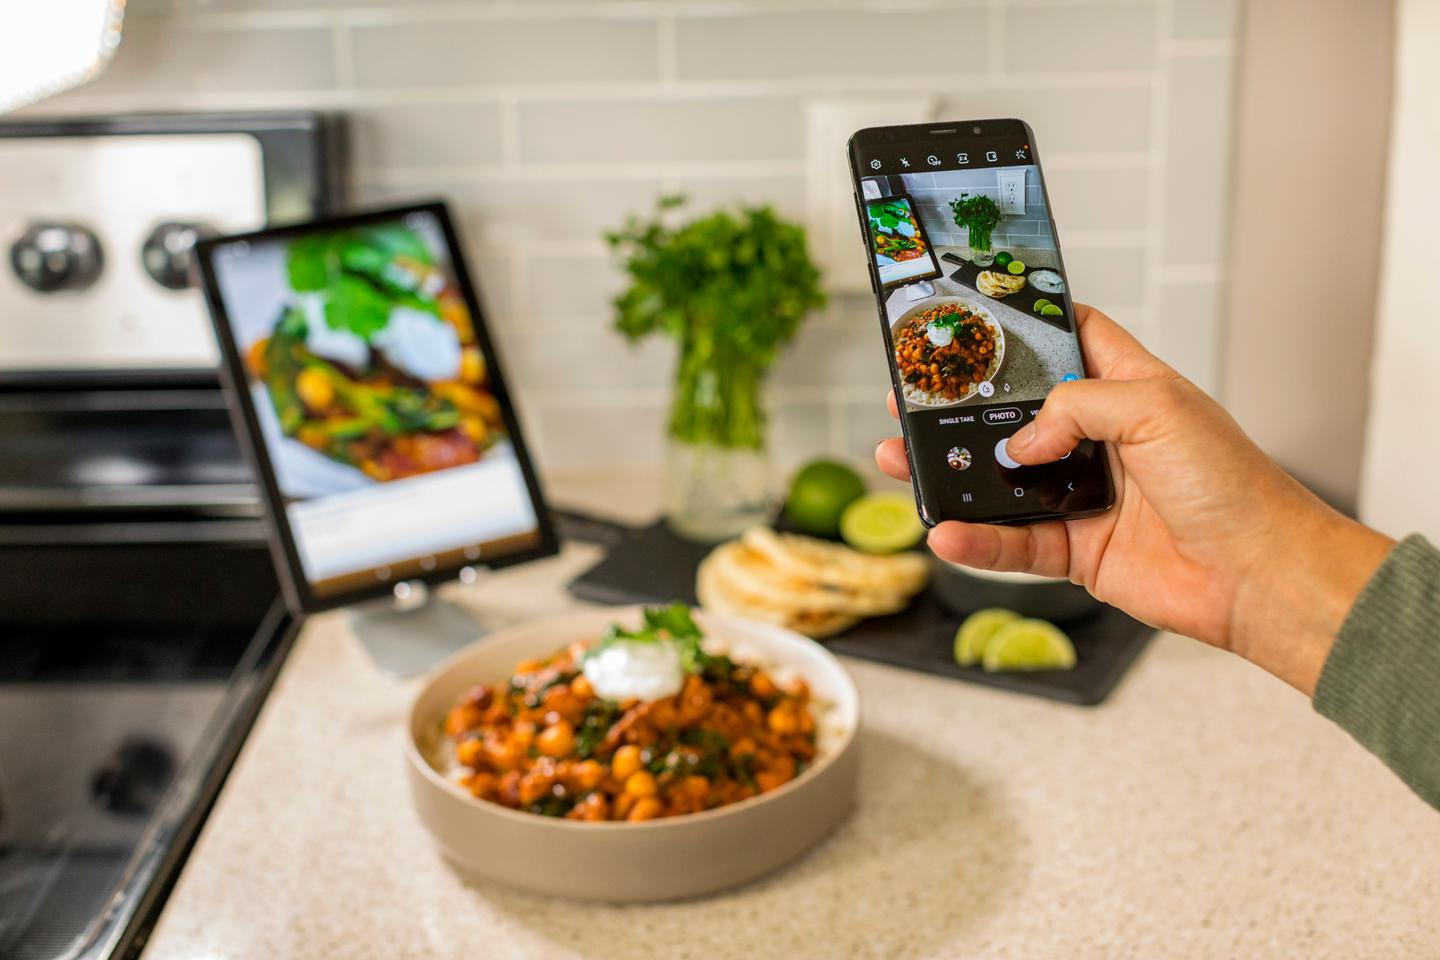 Users can choose between different recipes on the app, created either by company-affiliated chefs or by other Cooksy users